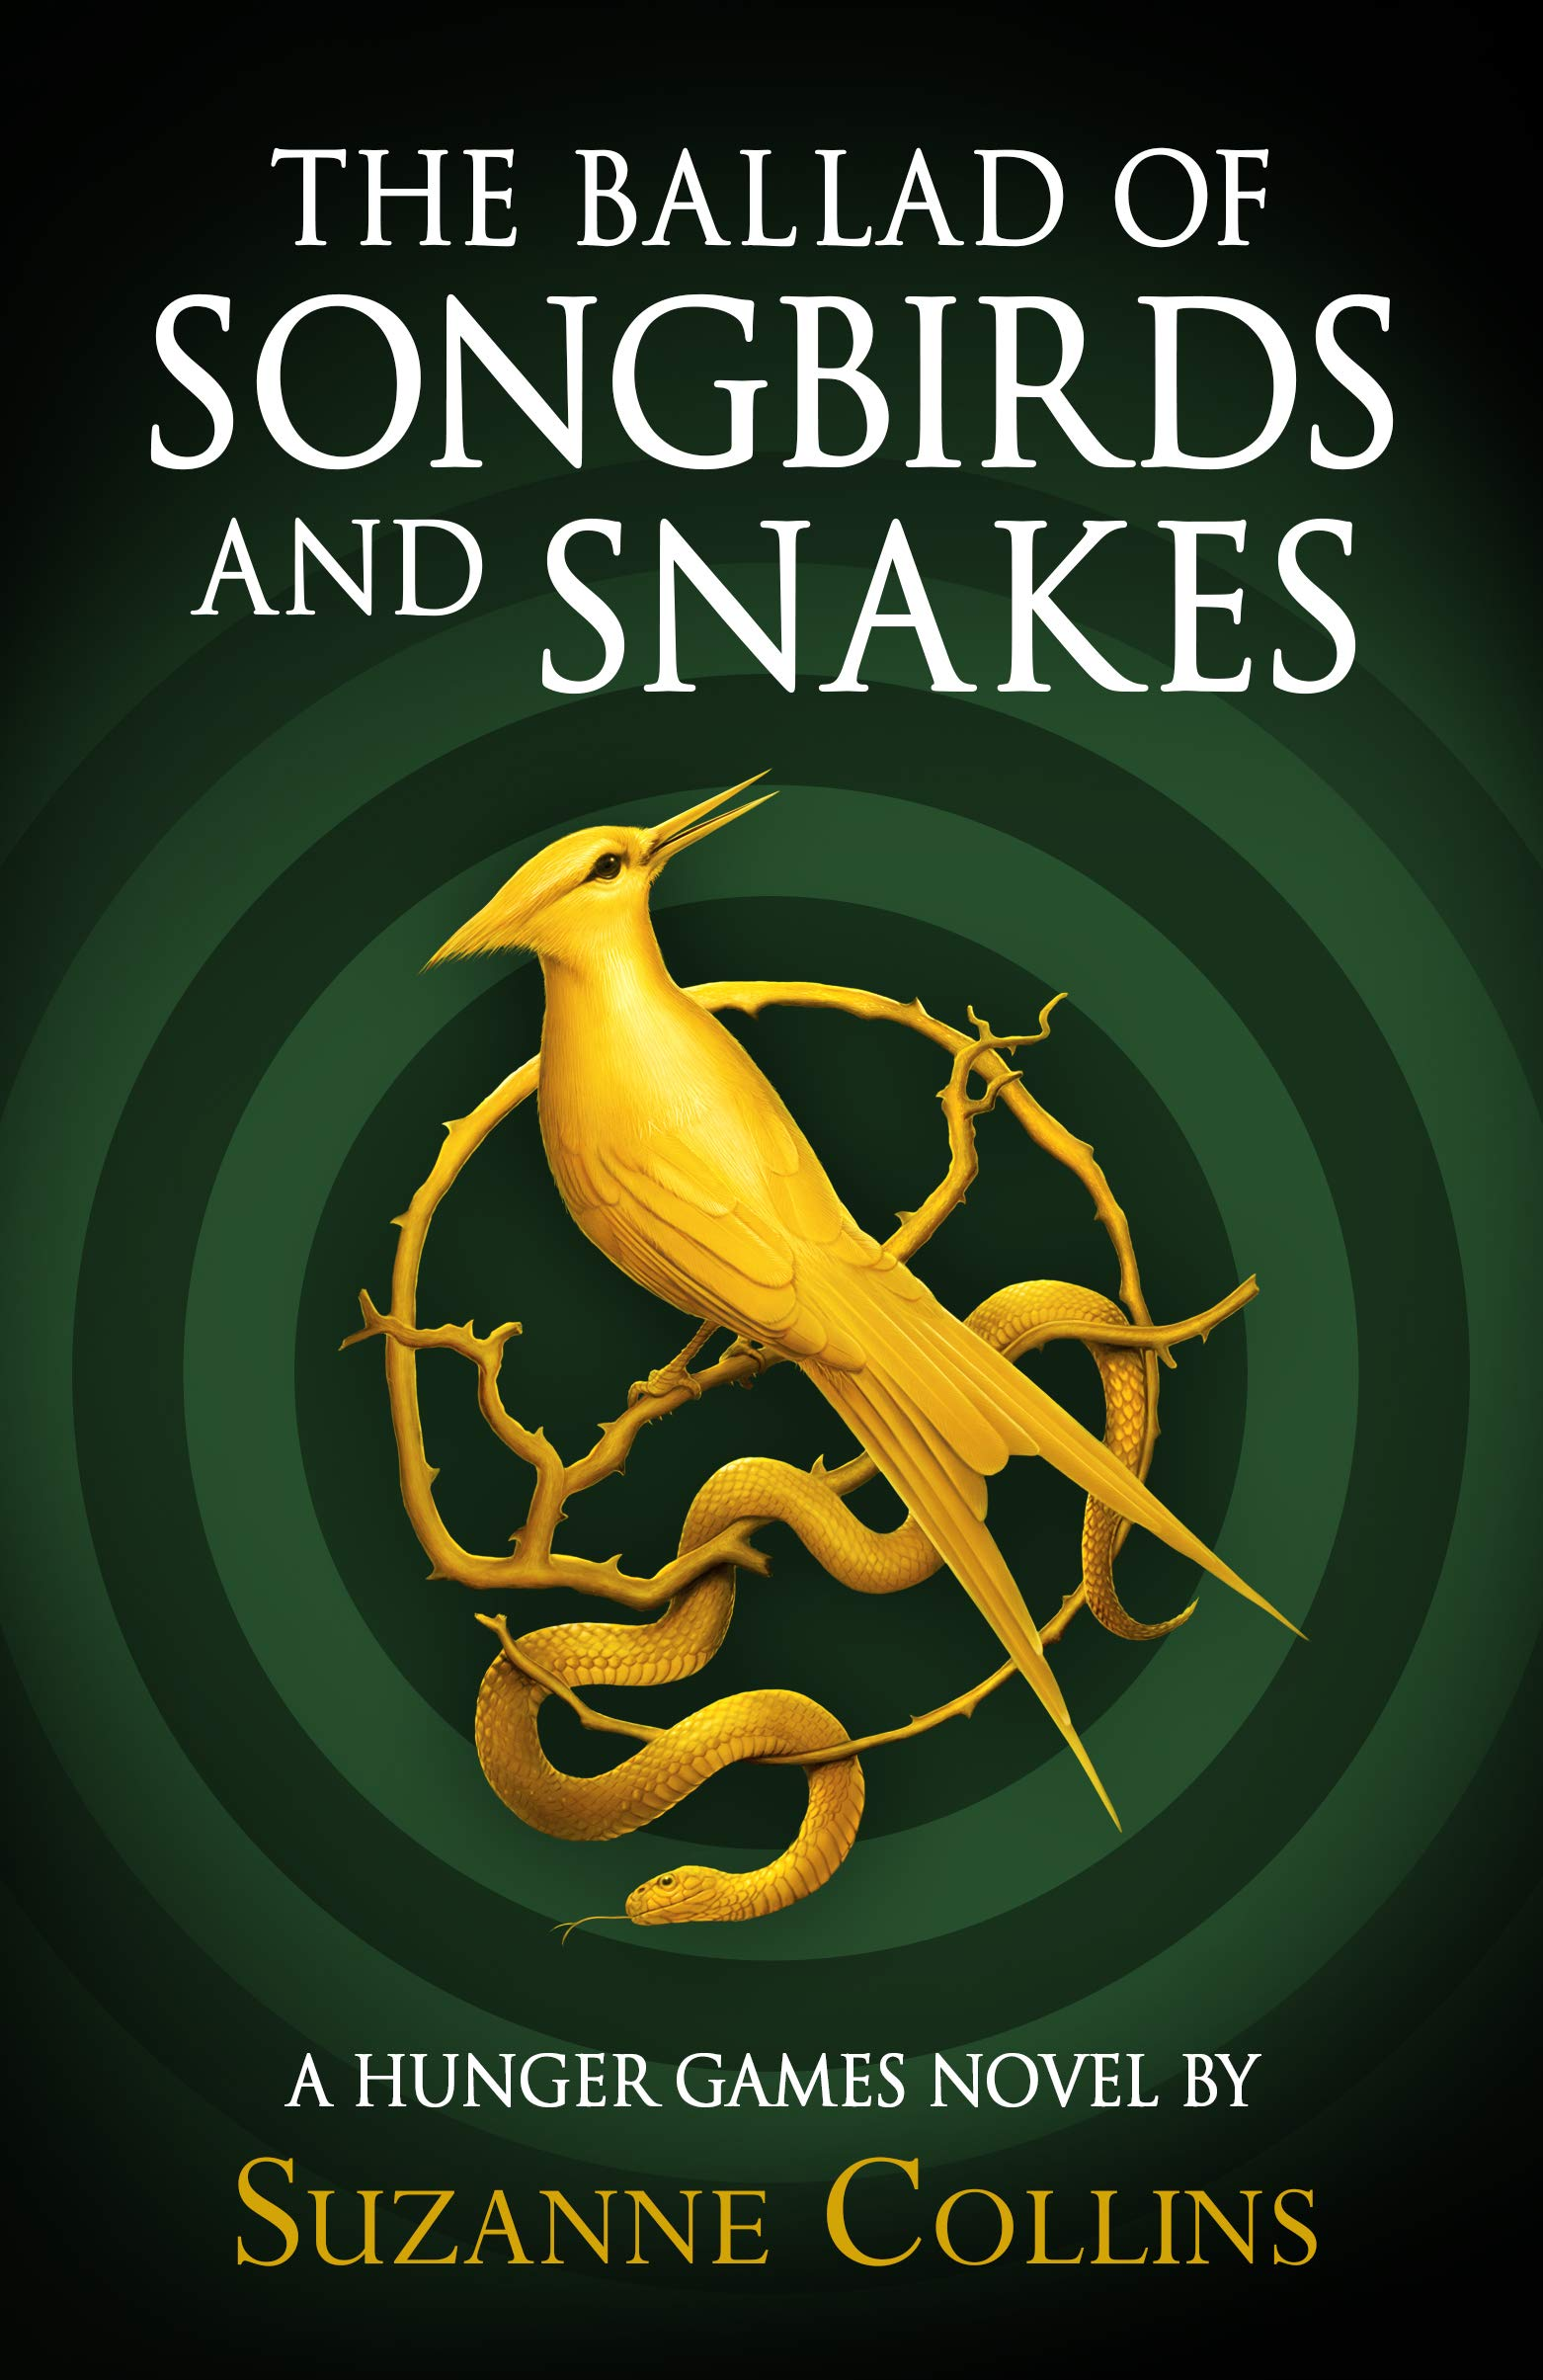 The Ballad of Songbirds and Snakes (A Hunger Games Novel) (The Hunger Games) por Suzanne Collins